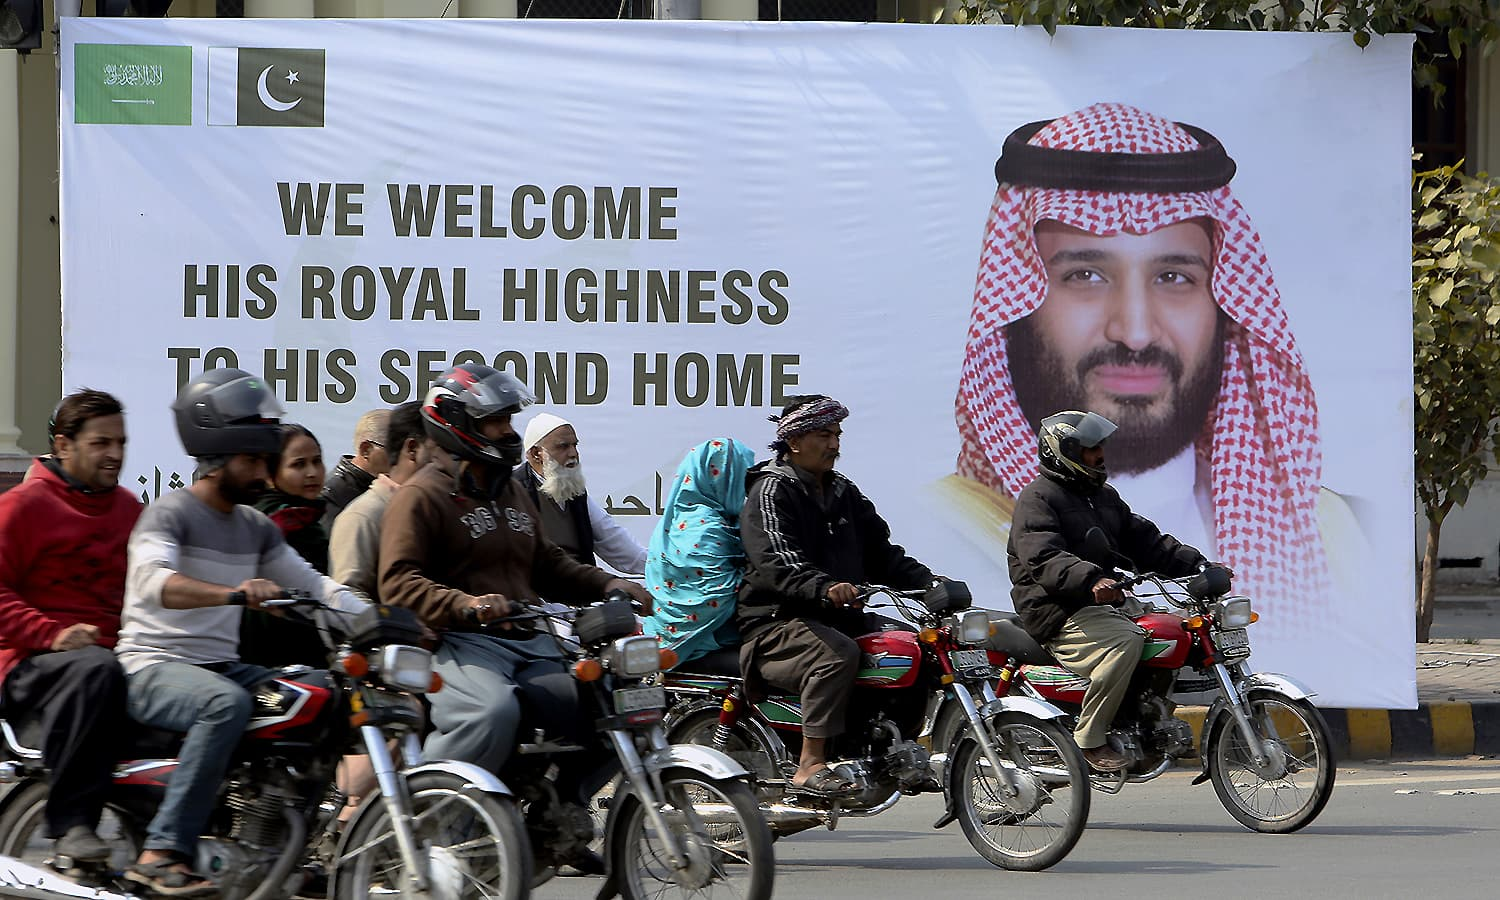 Motorcyclists pass by a banner welcoming Saudi Arabia's Crown Prince Mohammed bin Salman displayed on the occasion of his visit, in Lahore. ─ AP